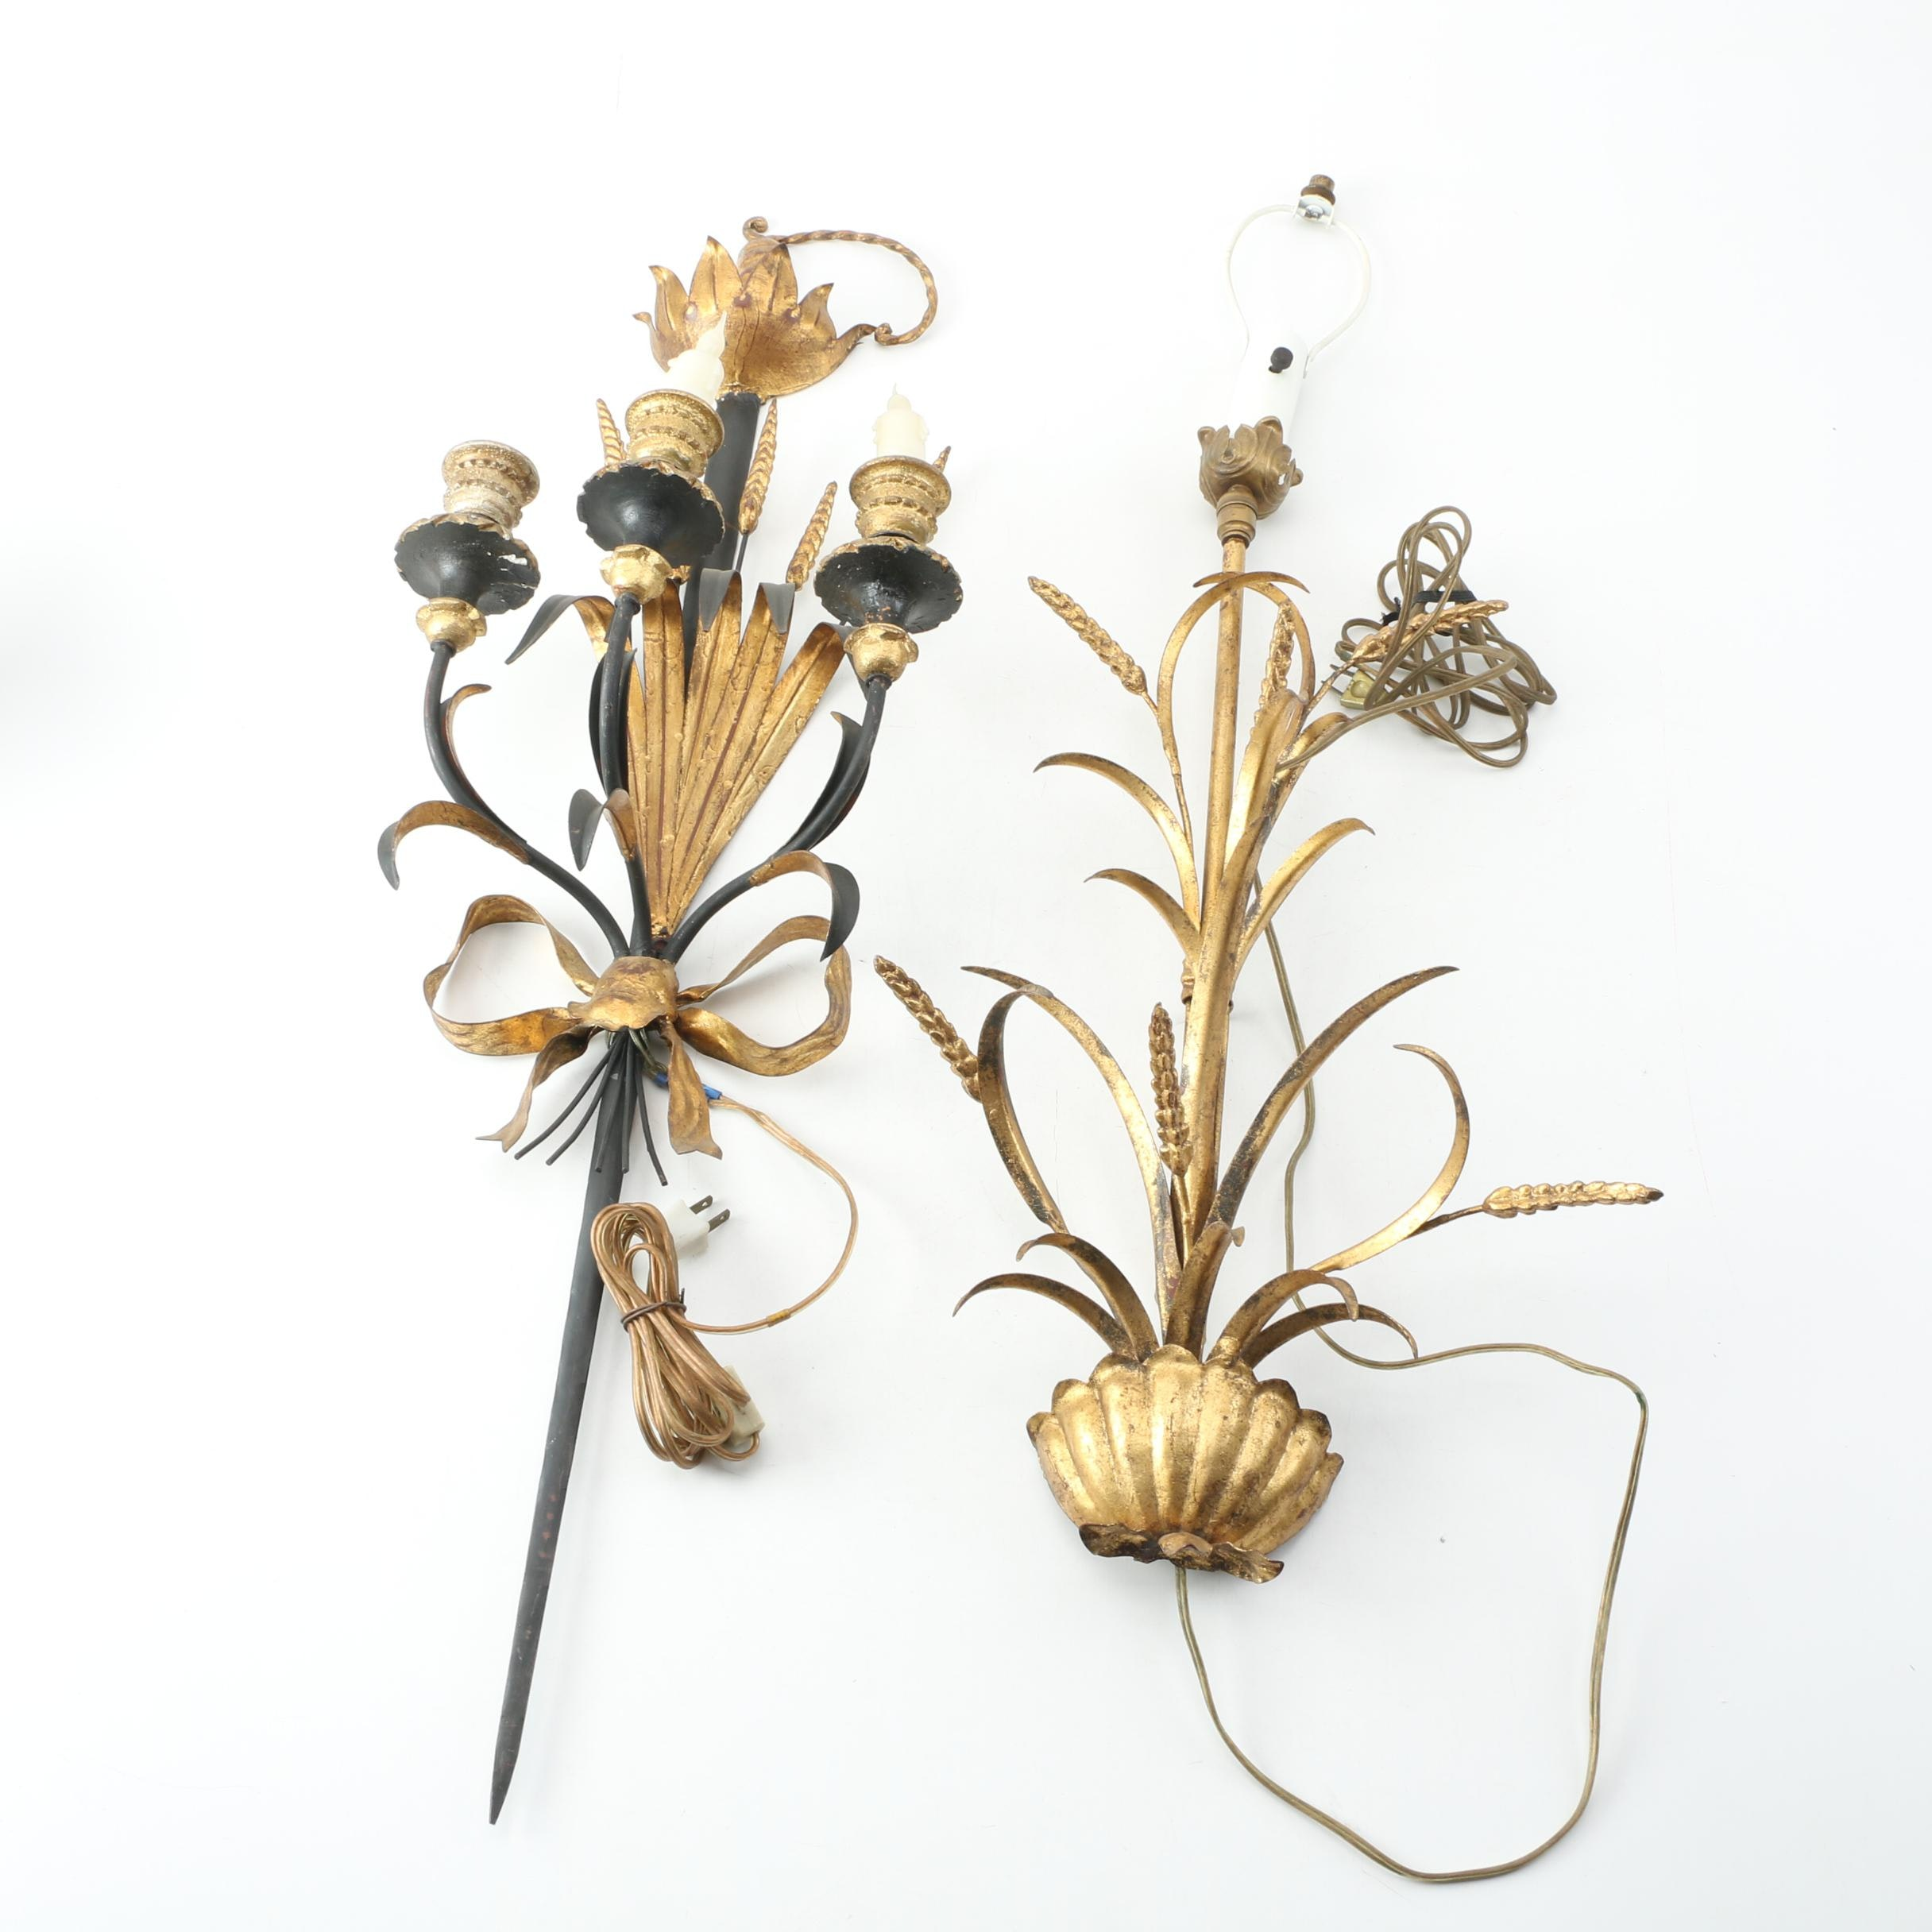 Gold Tone Tole Wall Sconces with Wheat Accents